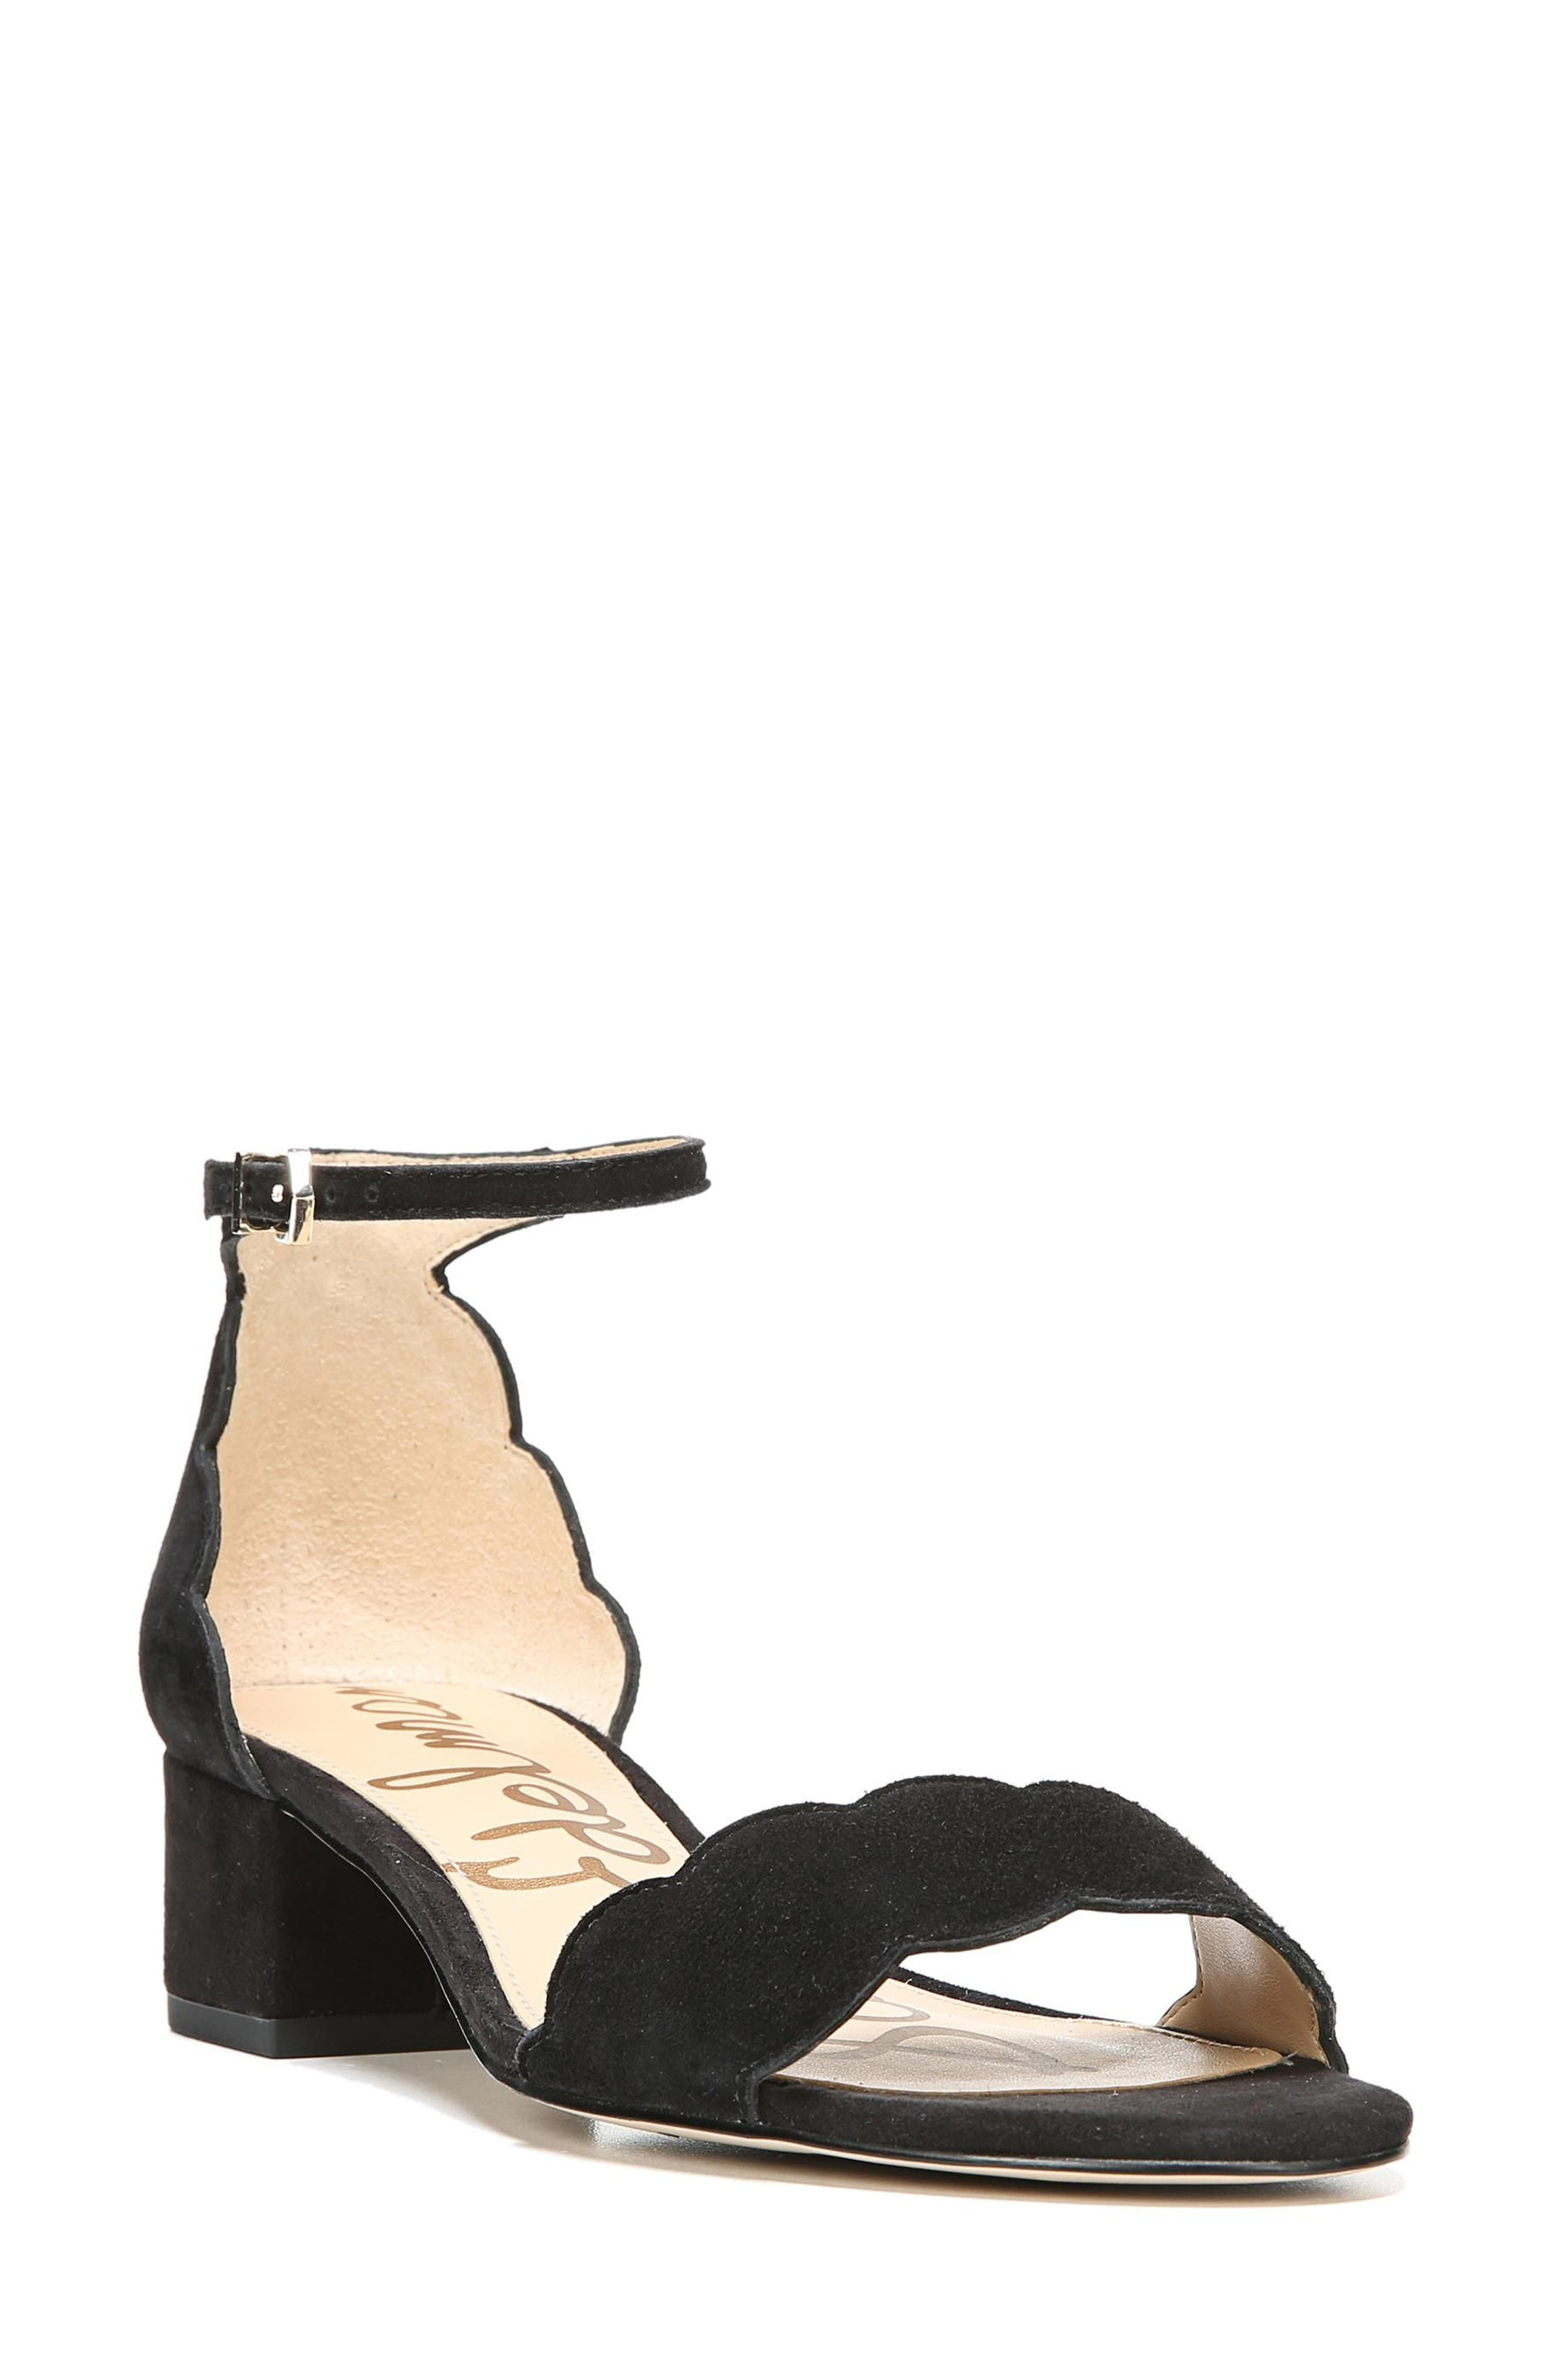 SAM EDELMAN Inara Scalloped Block Heel Sandal